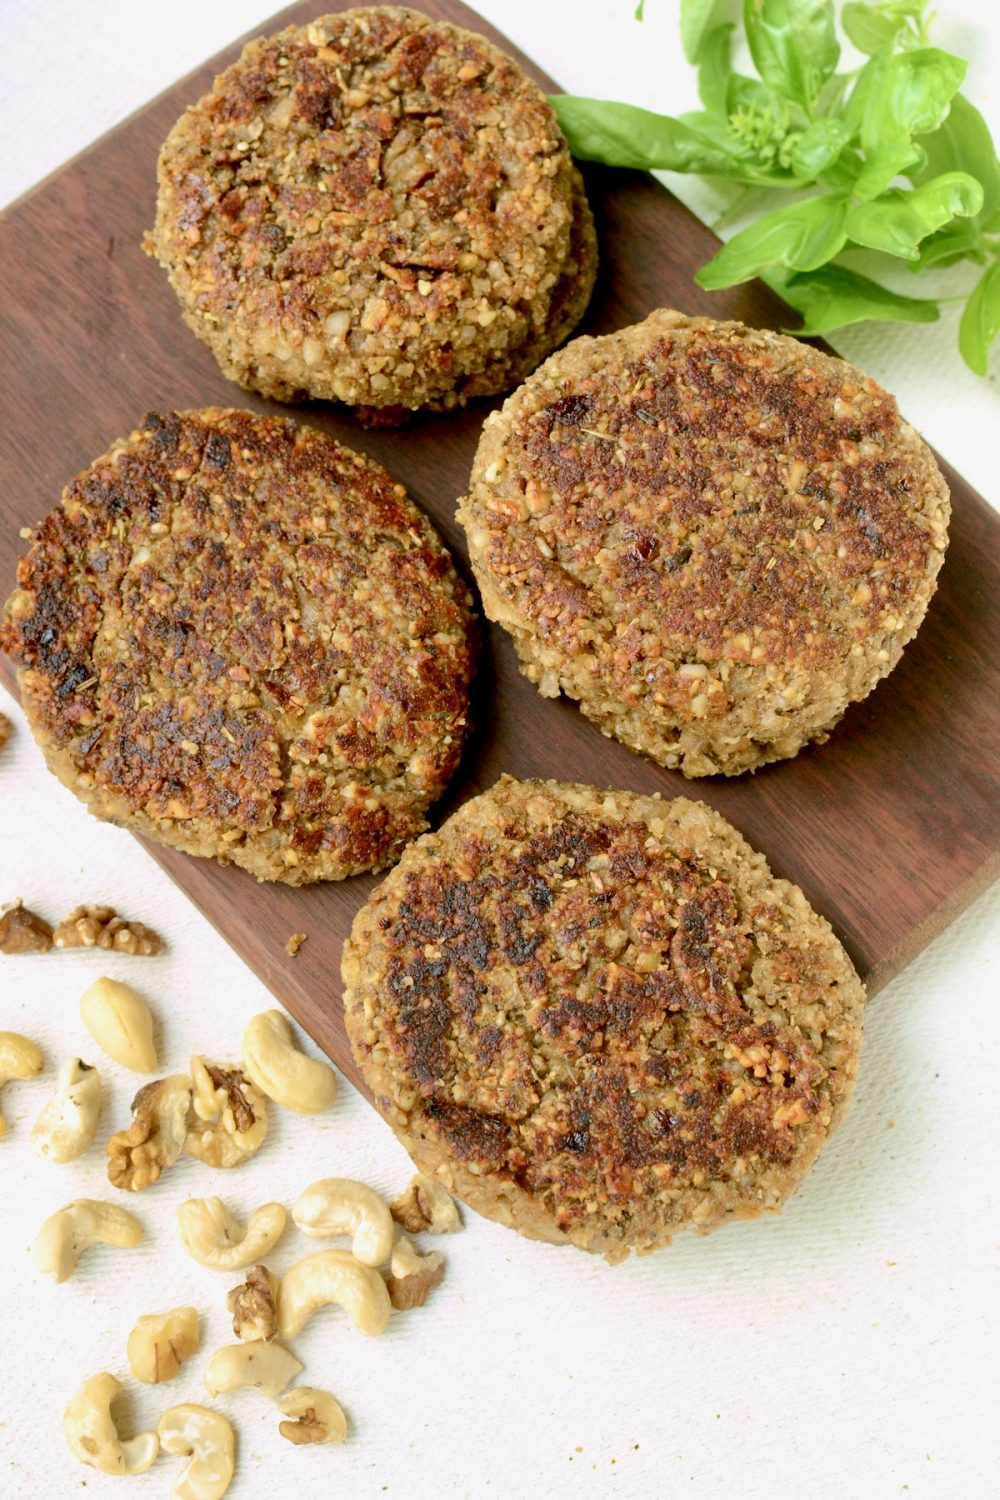 Some cooked nut burgers on a dark wooden board, with some fresh green leafs and nuts scattered around it.